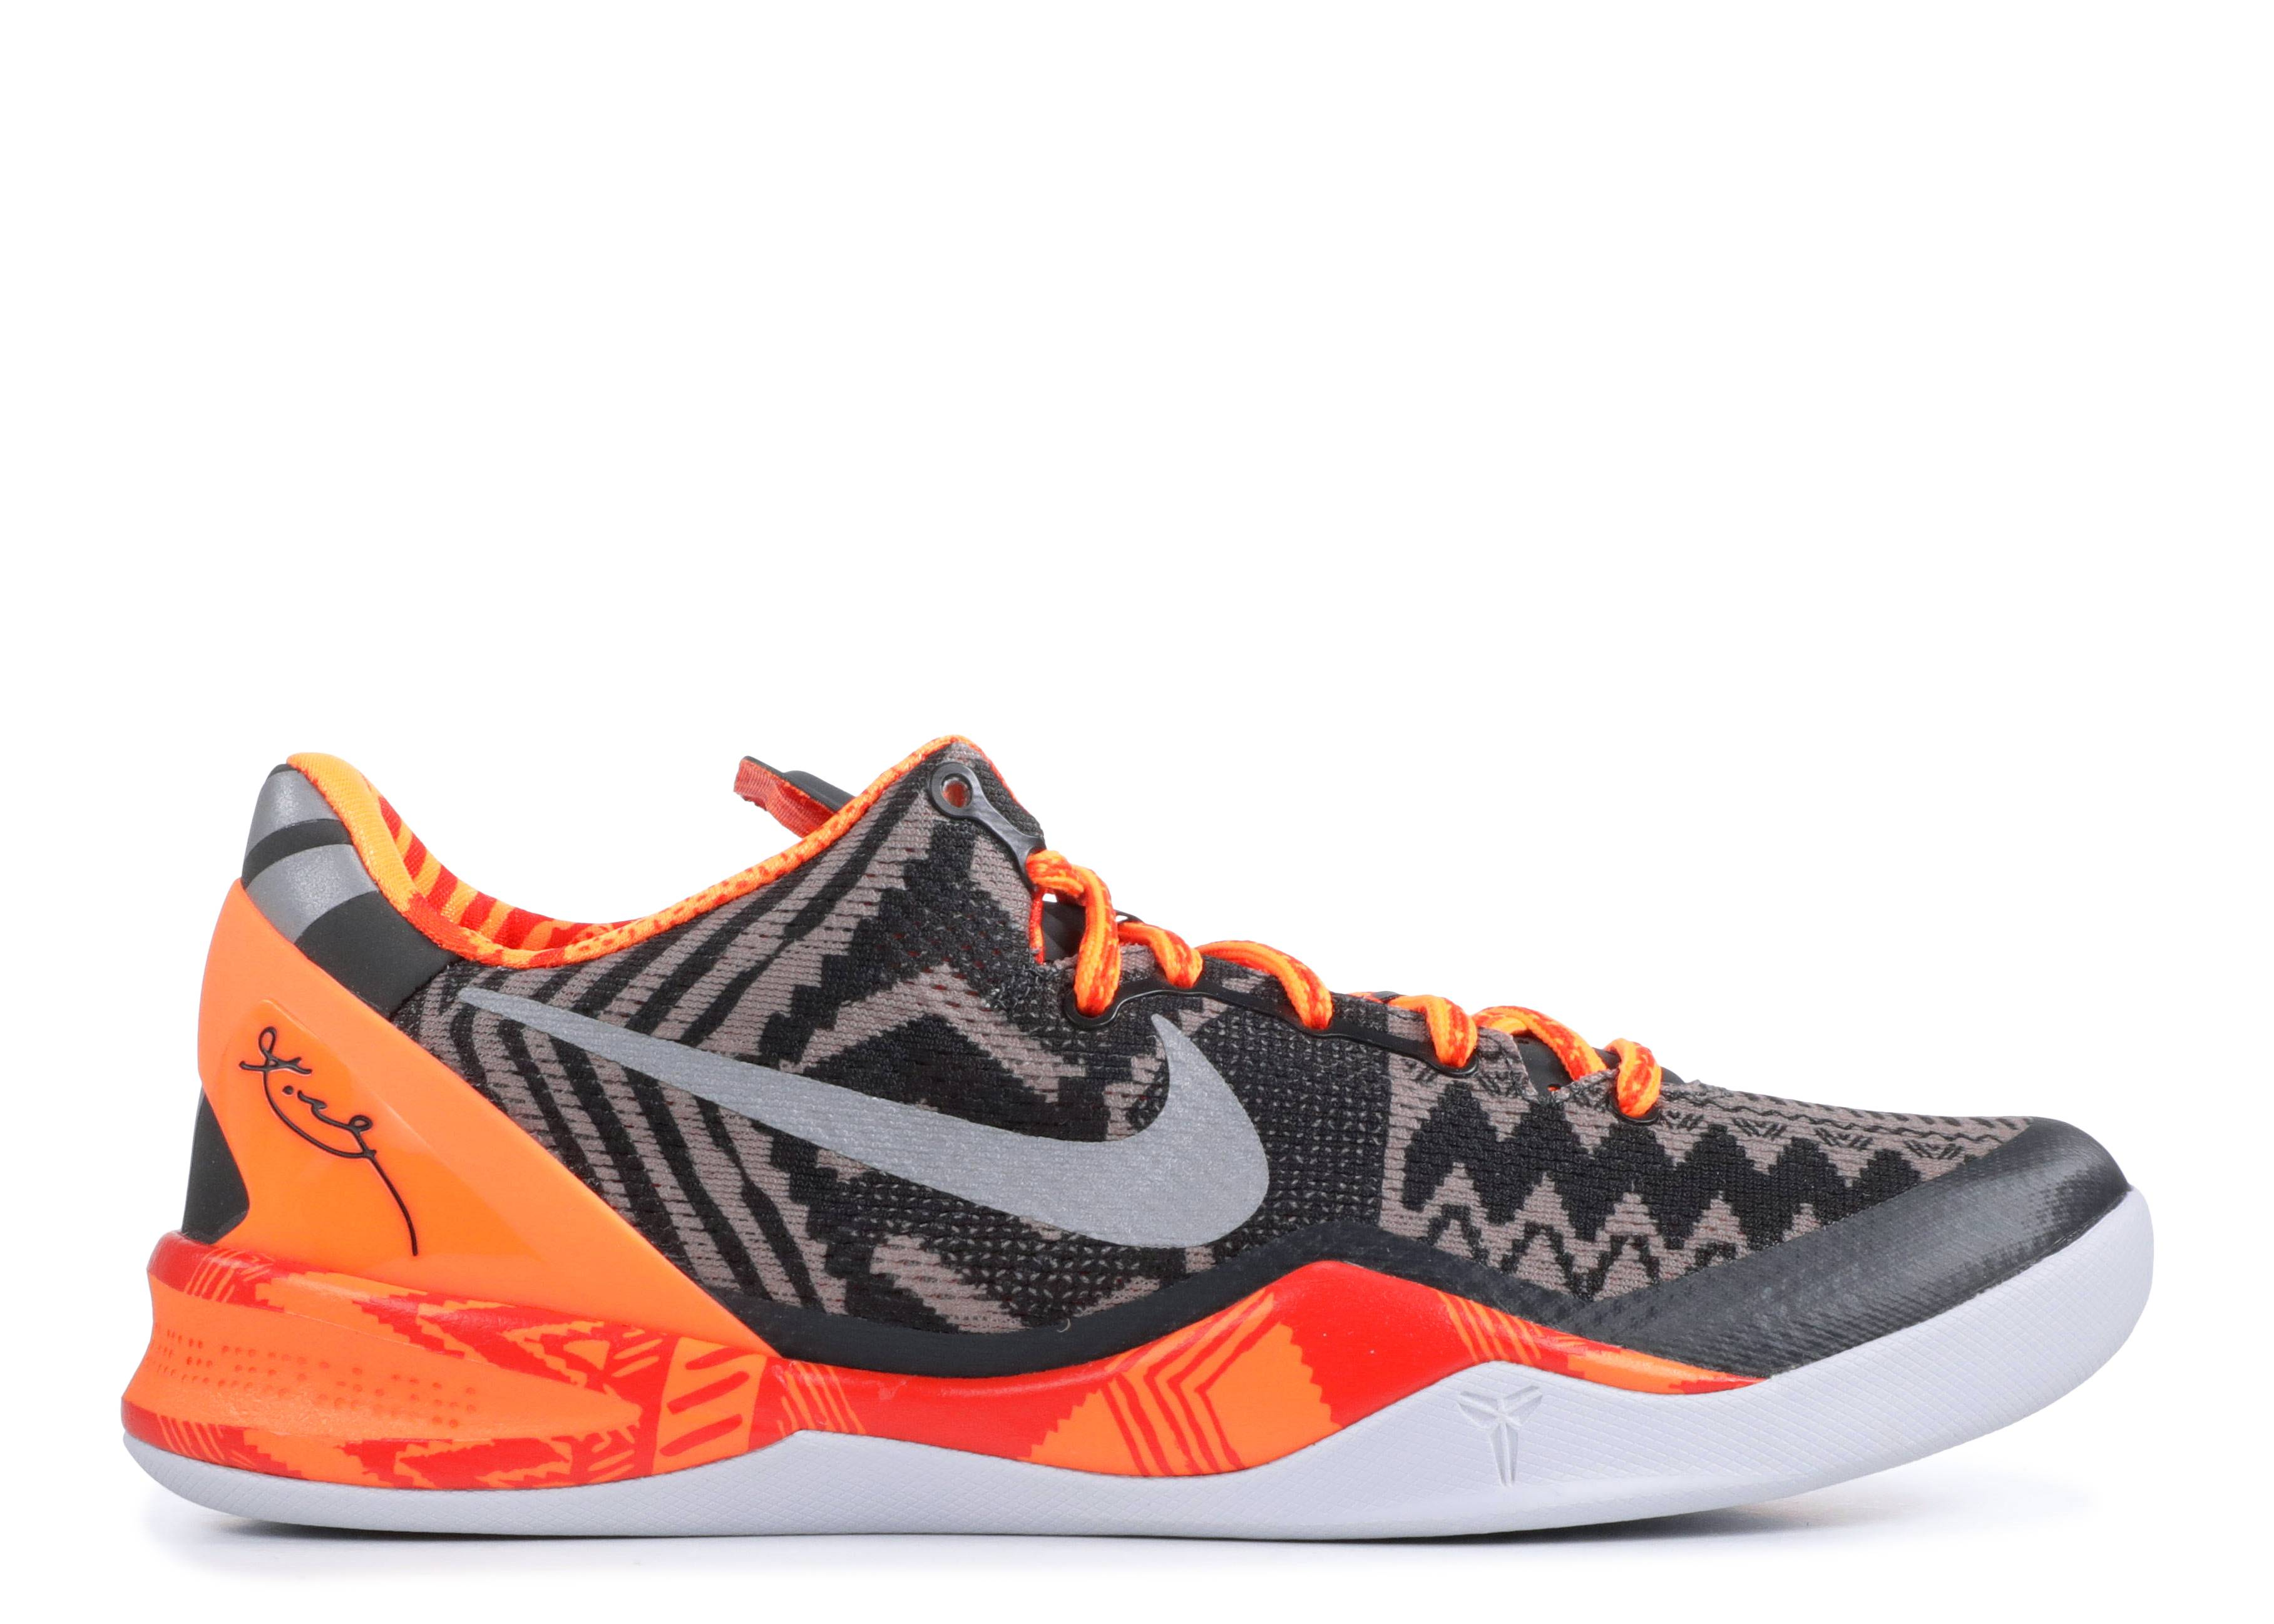 new concept ff07f 376c6 ... hot nike. kobe 8 system gc black history month c98c5 e39a7